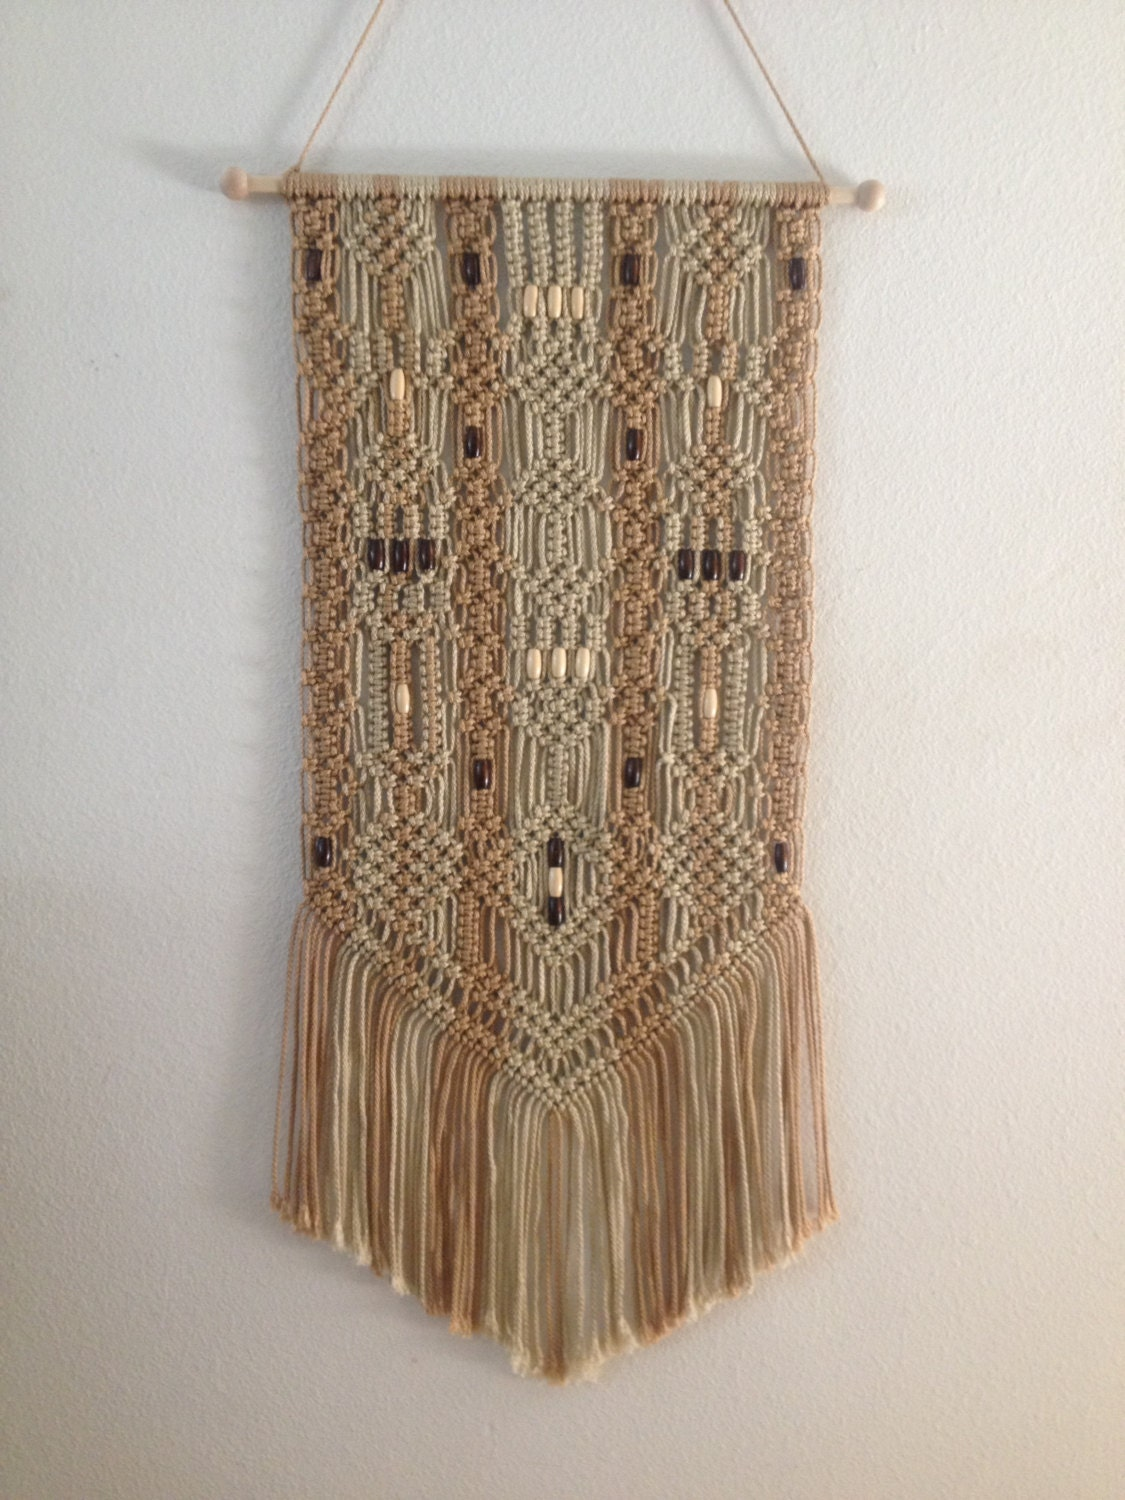 Macrame Wall Hanging Macrame Home Decor